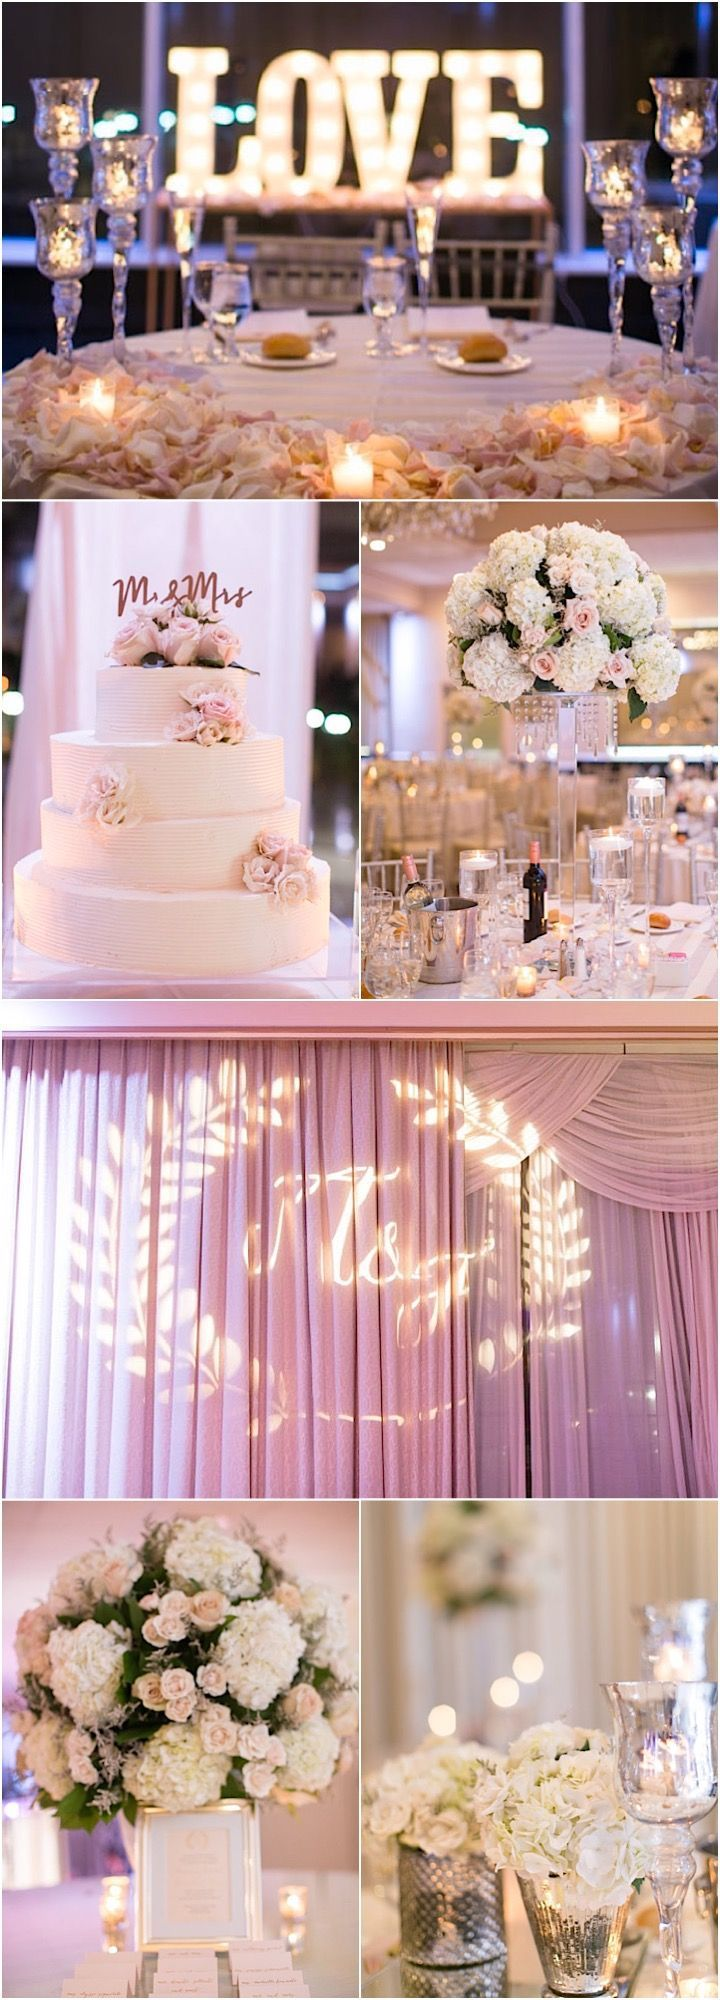 Nothing But Sweet Rmance In This New York Wedding